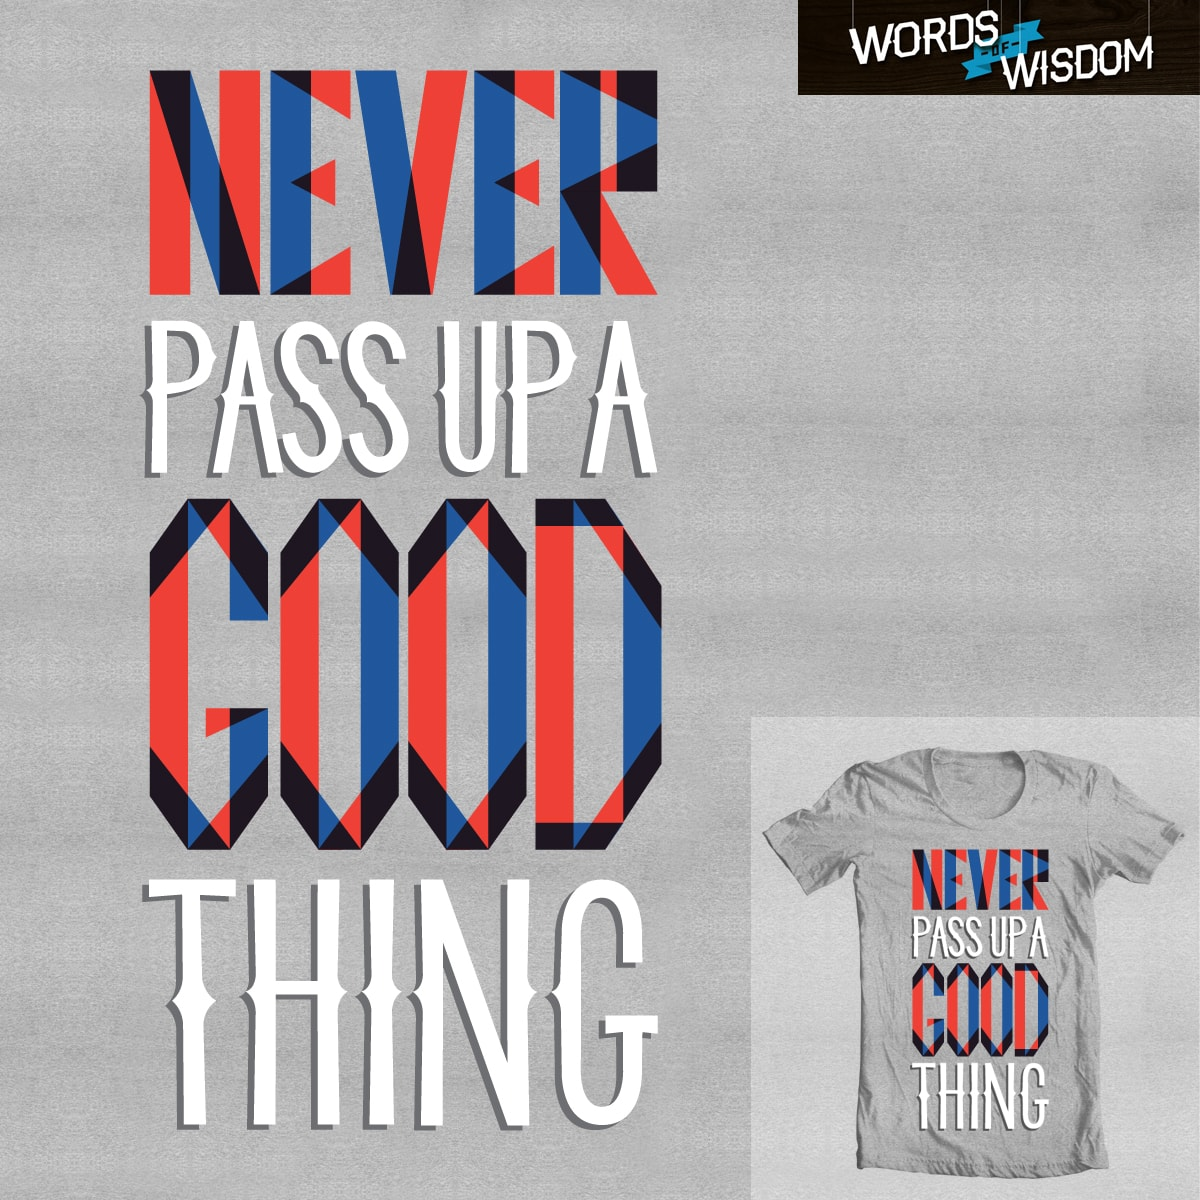 Good Thing by Wharton on Threadless